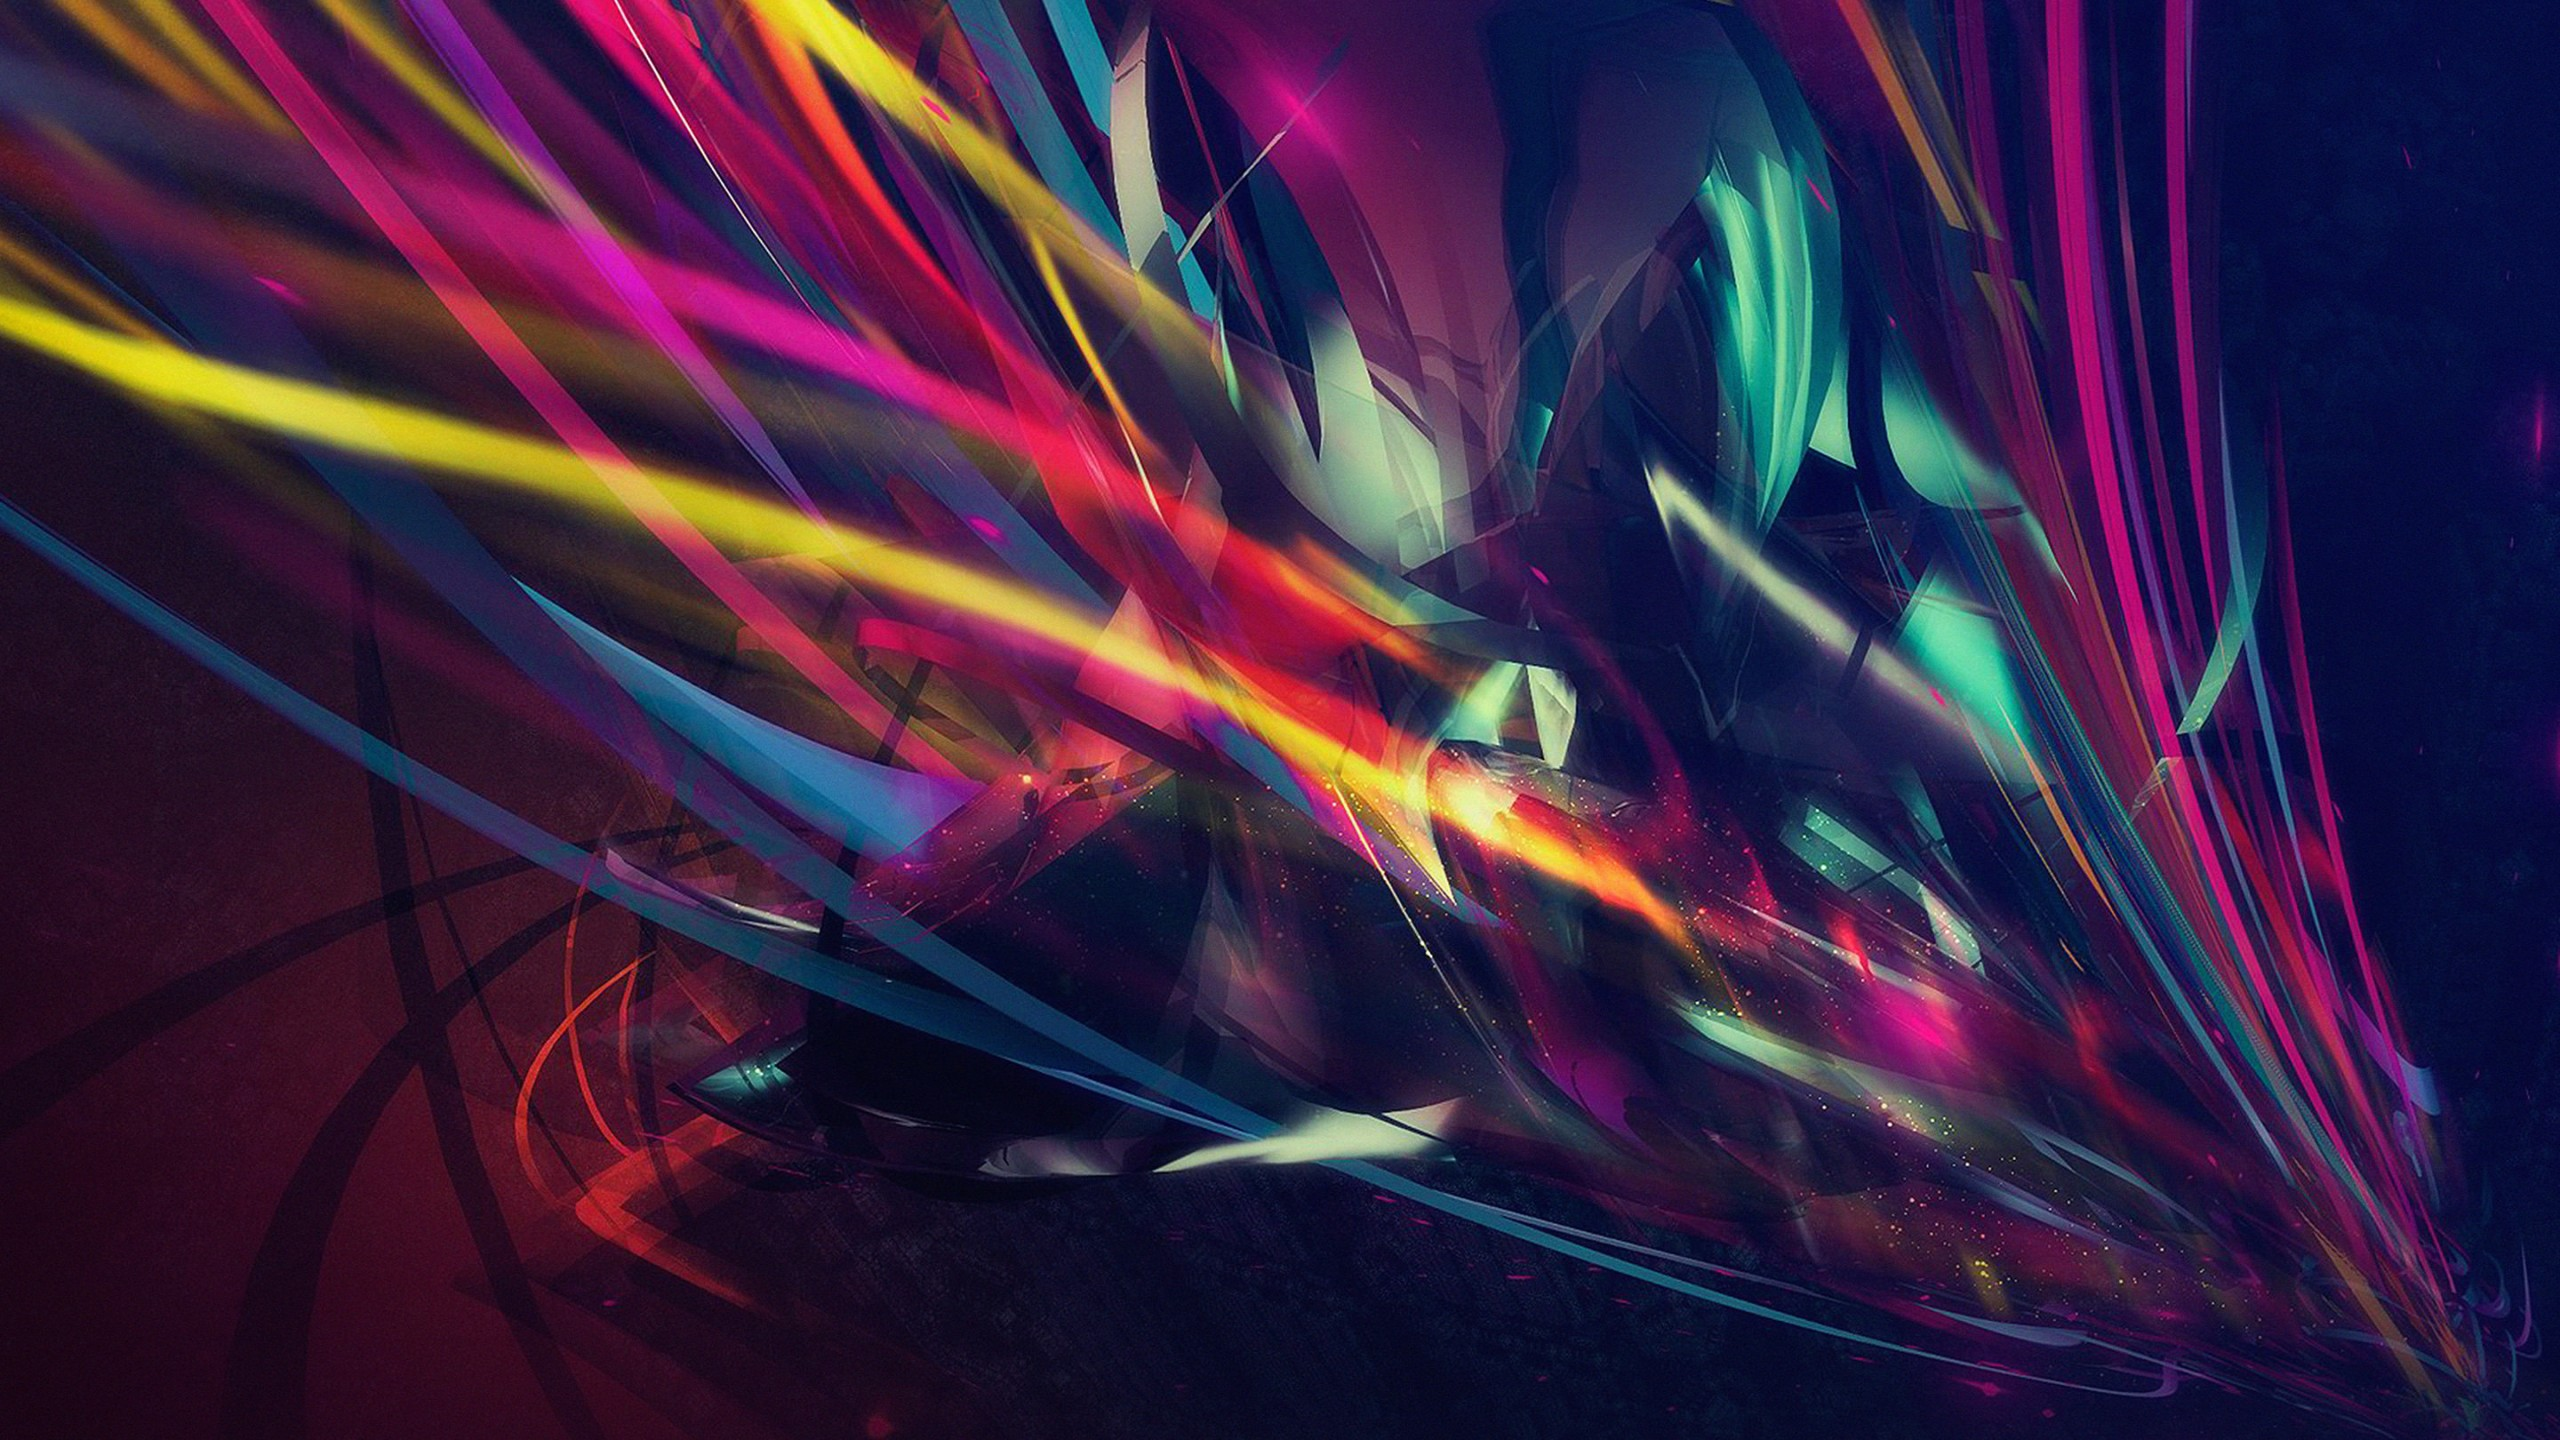 1920x1080 Abstract Colorful Background Hd Laptop Full HD ...